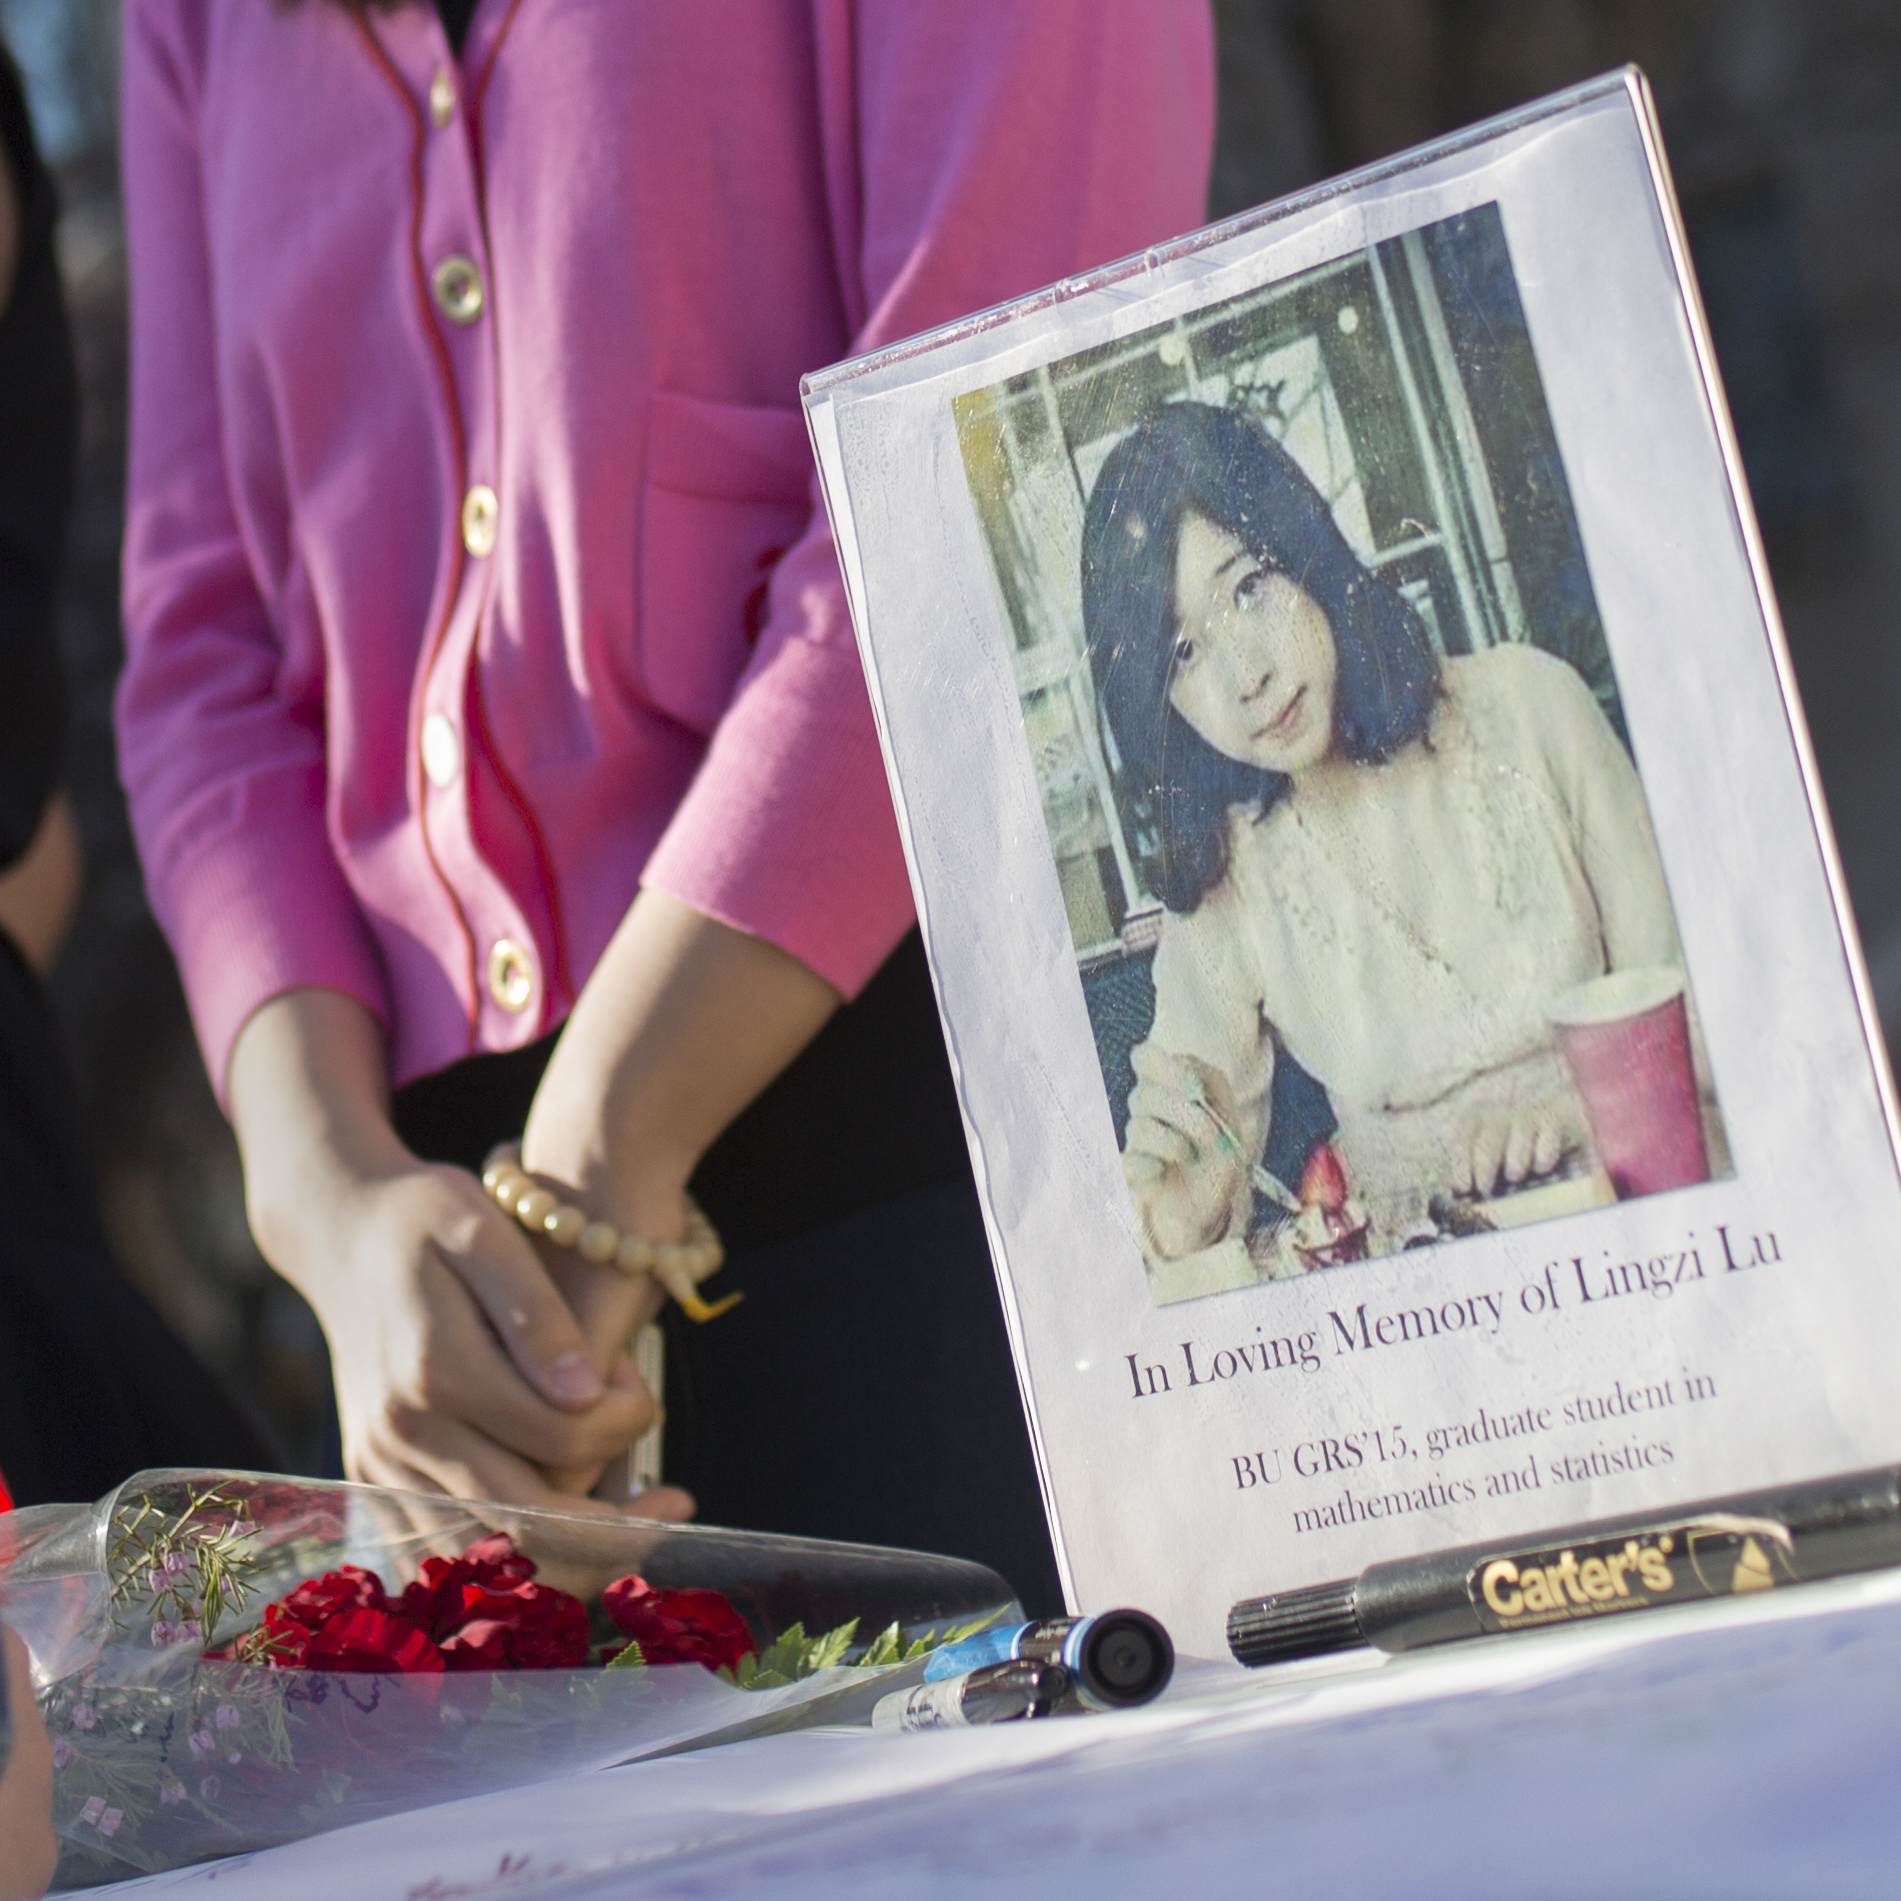 Outside Boston University's Marsh Chapel on Wednesday, friends gathered to remember graduate student Lingzi Lu. She was one of the three people killed in Monday's bombings at the Boston Marathon.